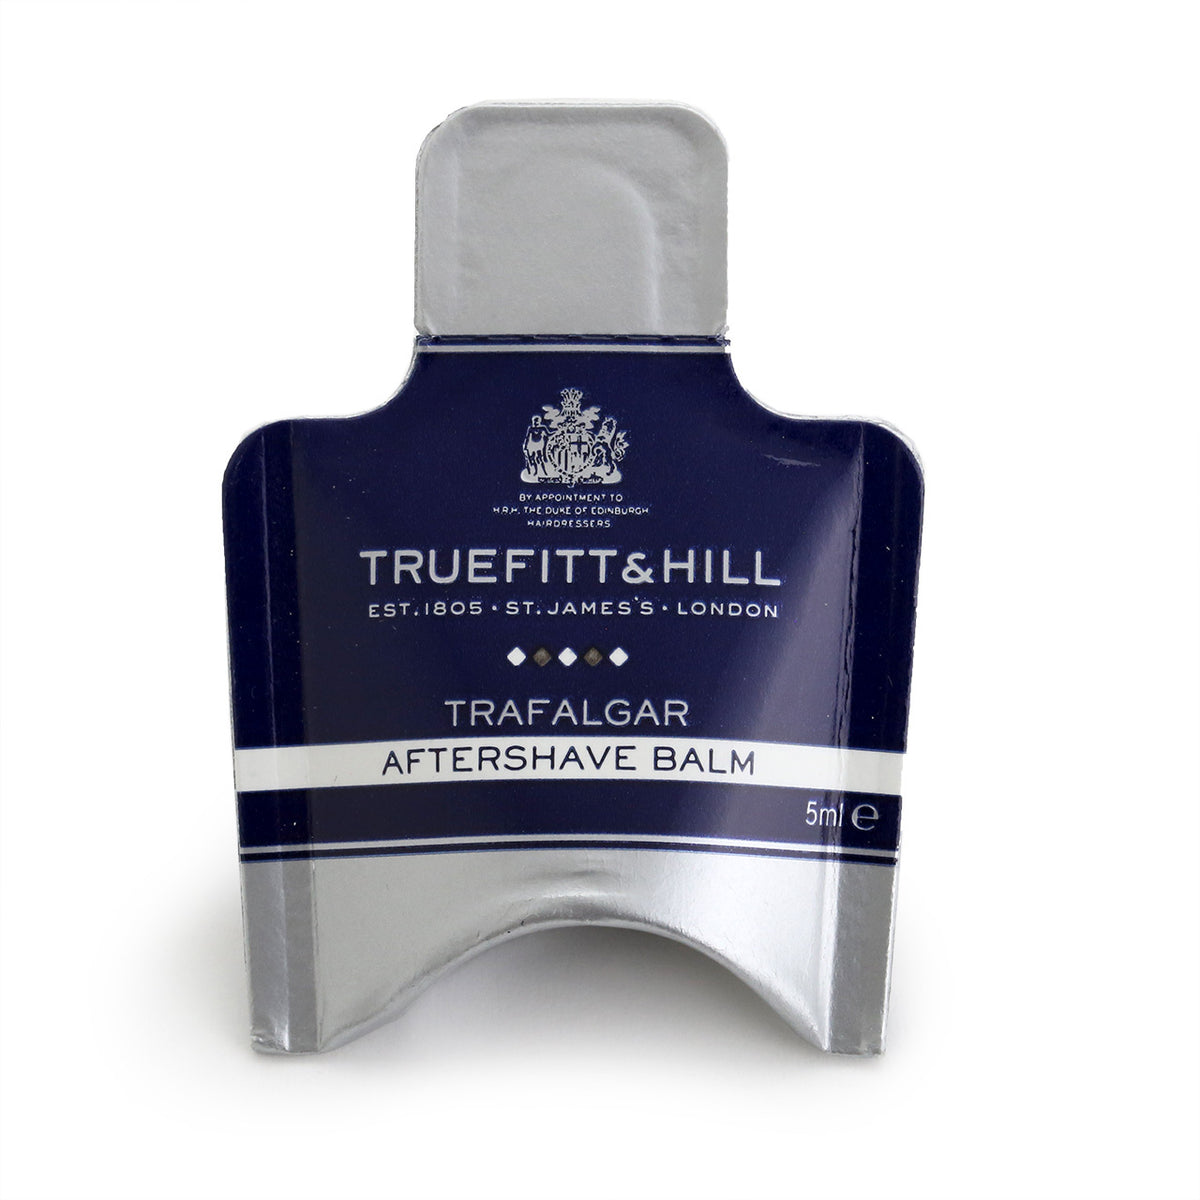 Truefitt & Hill Shaving After Shave Balm Samples